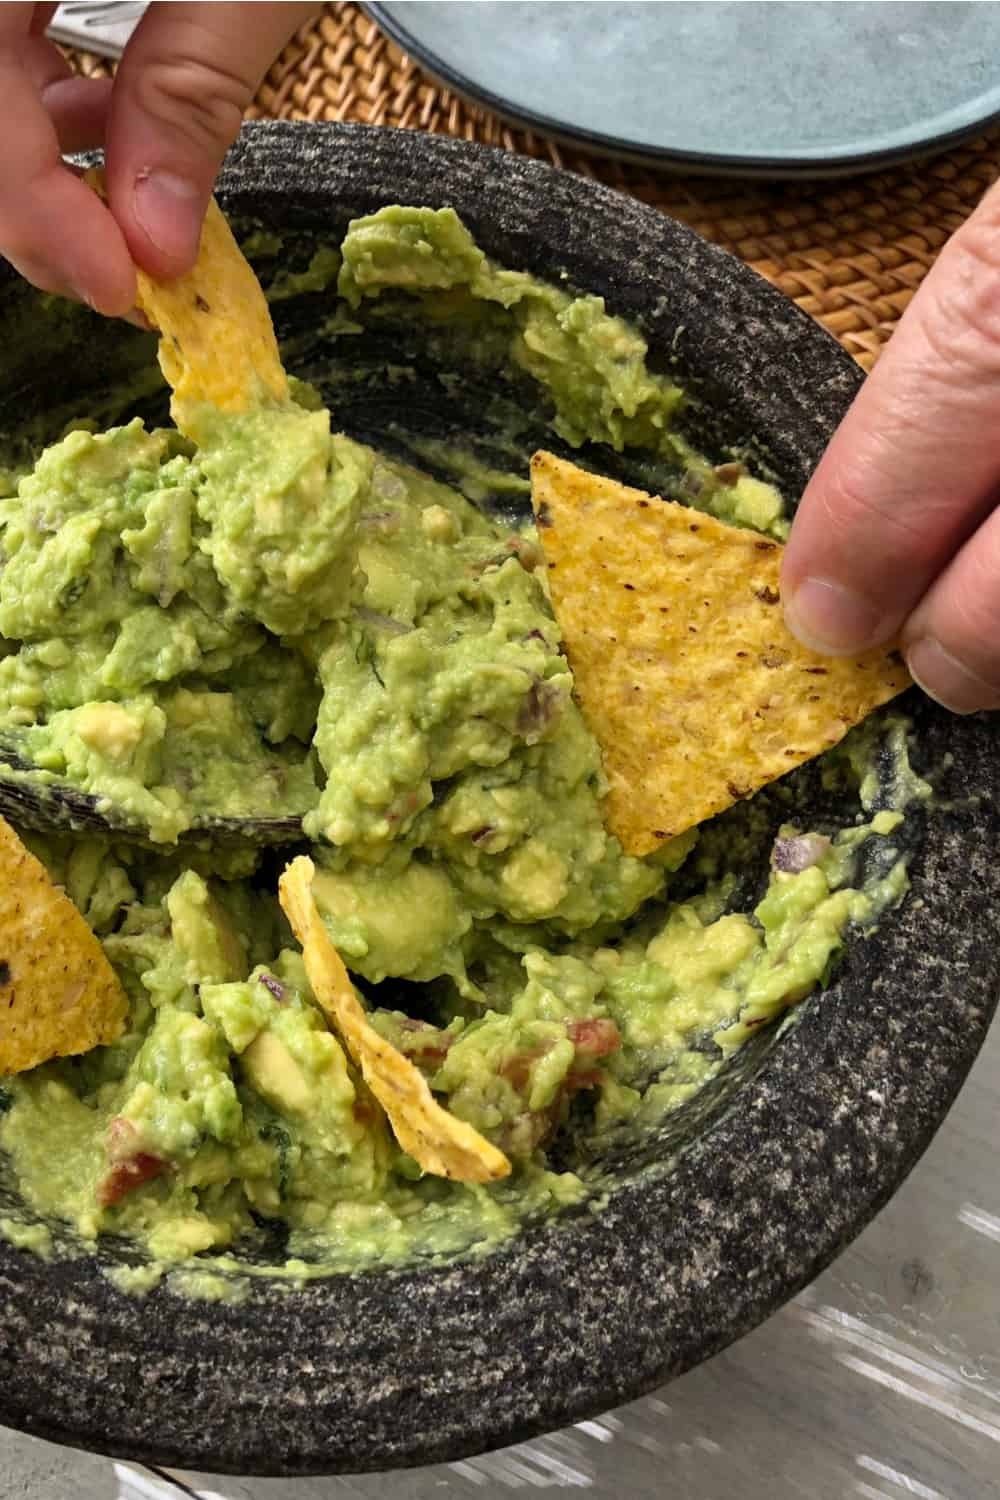 The Risk of Consuming Expired Guacamole